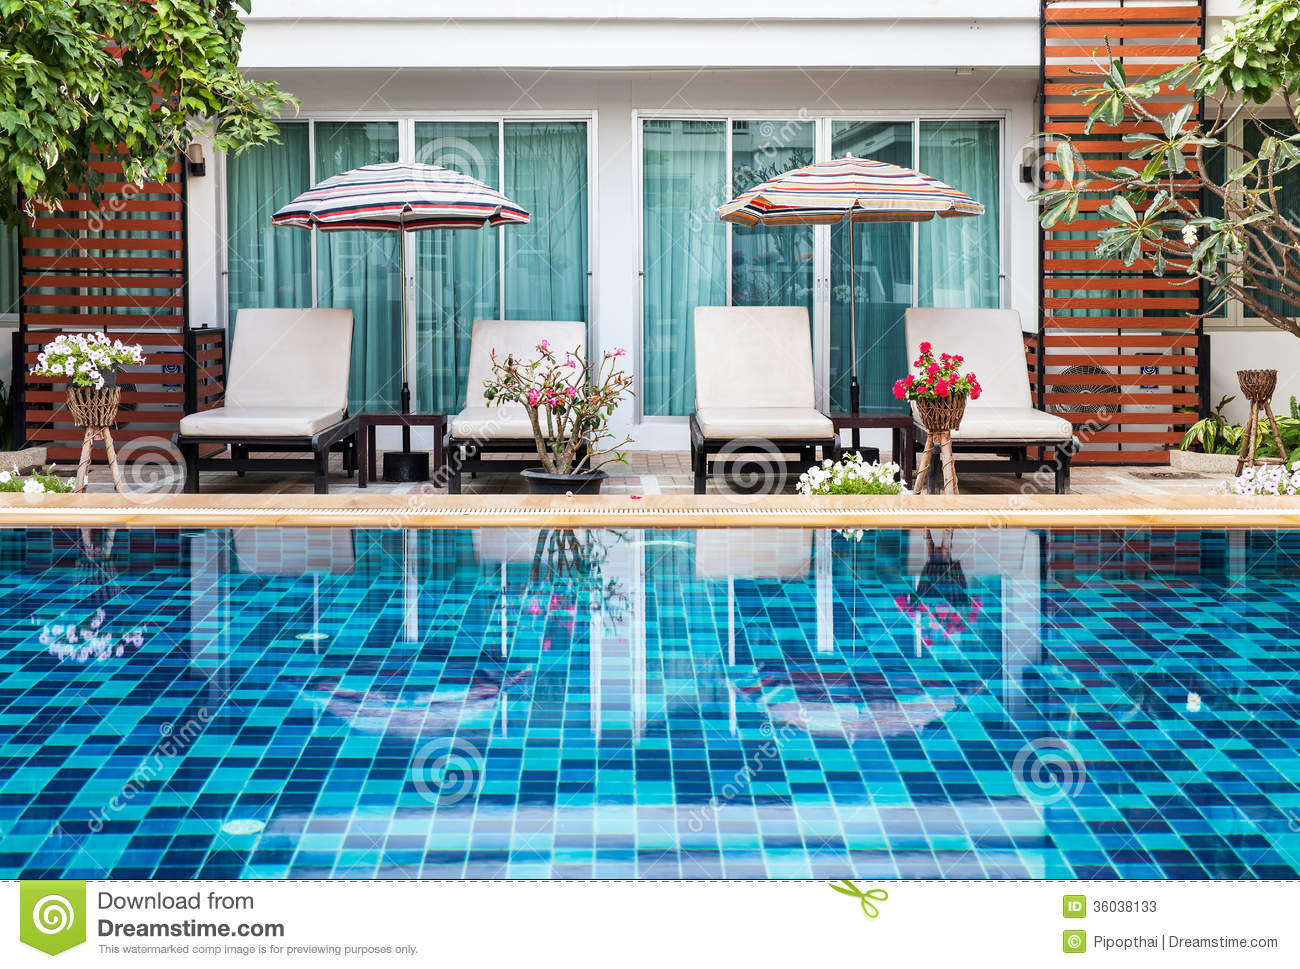 Beautiful swimming pool with chairs stock image image of capital asian 36038133 for Beautiful swimming pool pictures